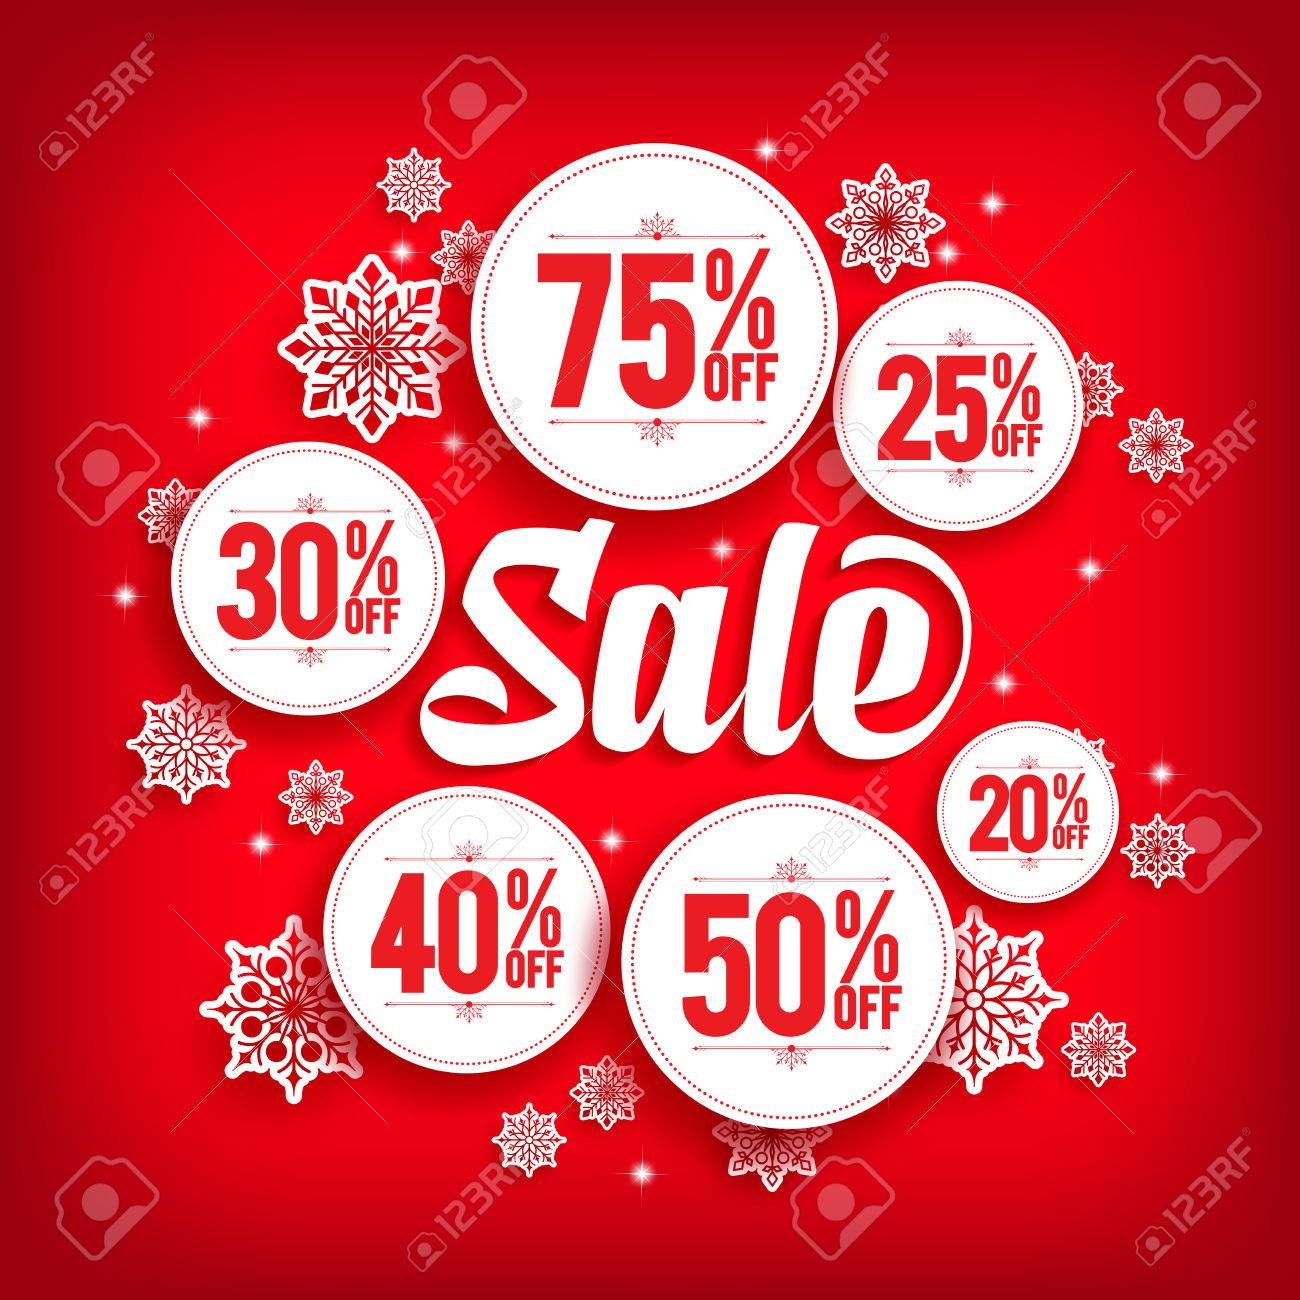 christmas sale discount in circles with snowflakes in red background